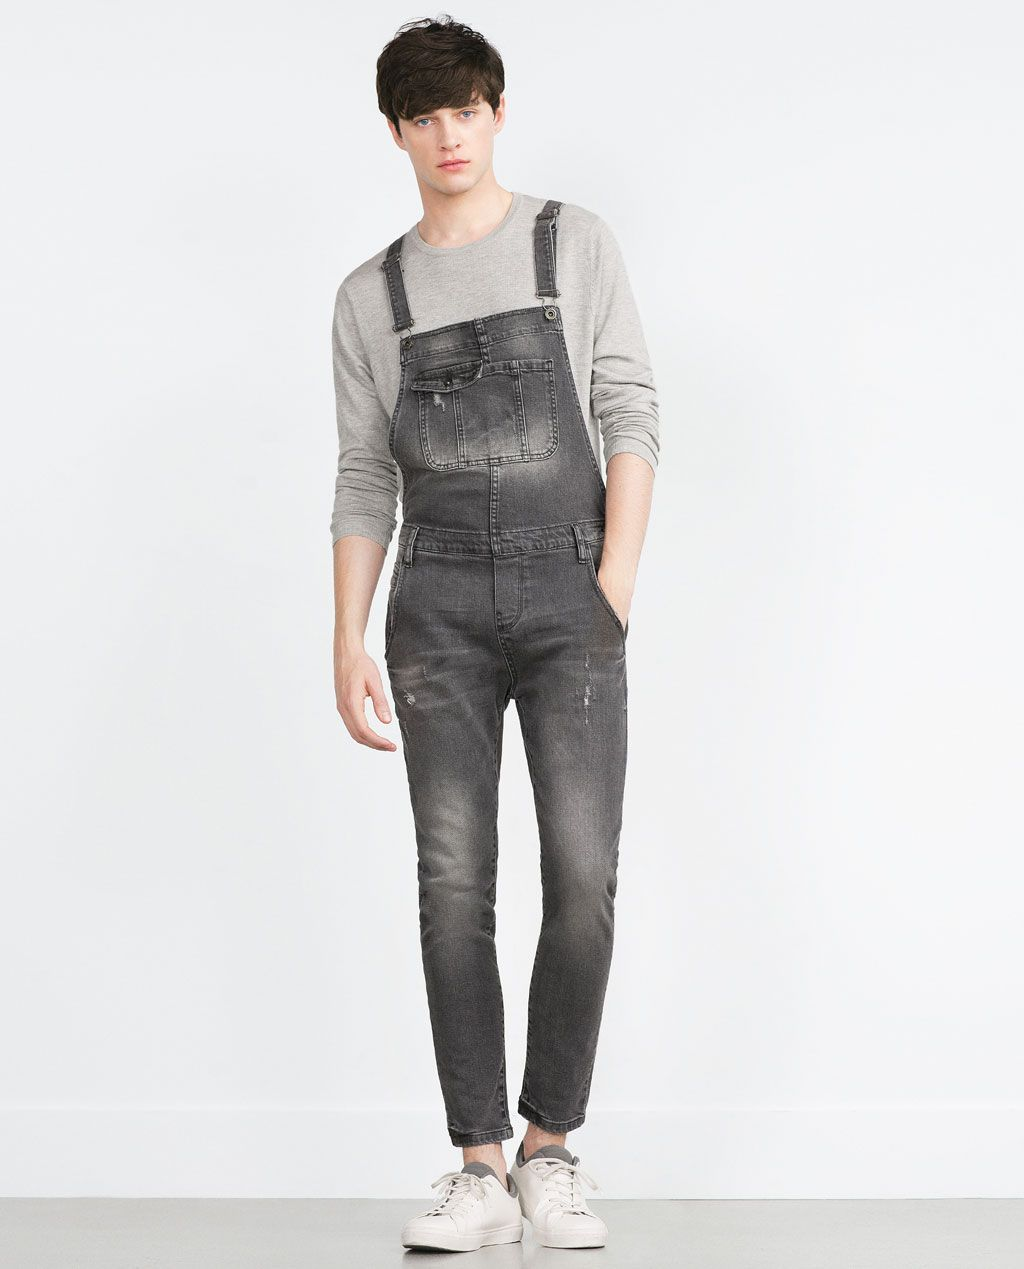 0ba7113a classic + distressed overalls from DIESEL - Pants // menswear overall style  + fashion inspiration | Fashion | Men's dungarees, Mens fashion:__cat__, ...